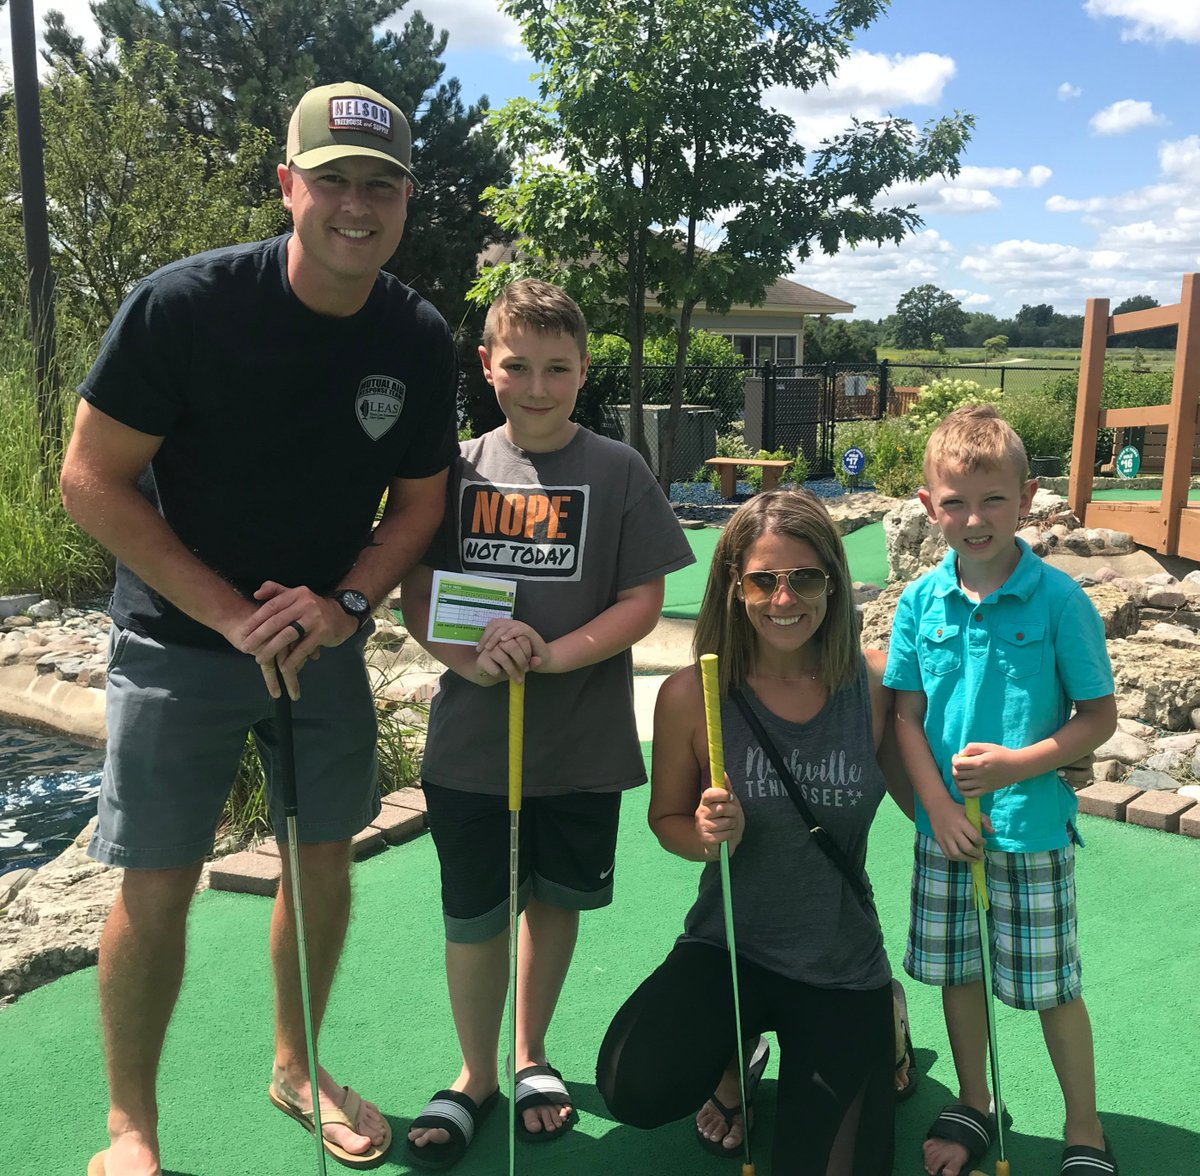 This is the last weekend (Sept 25-27) left to enjoy miniature golf and the driving range at Lippold Family Golf Center   Everything you need to know to plan your visit can be found on our website   Sept 25-27 Friday: 4-8 PM Saturday & Sunday: 9 AM-8 PM